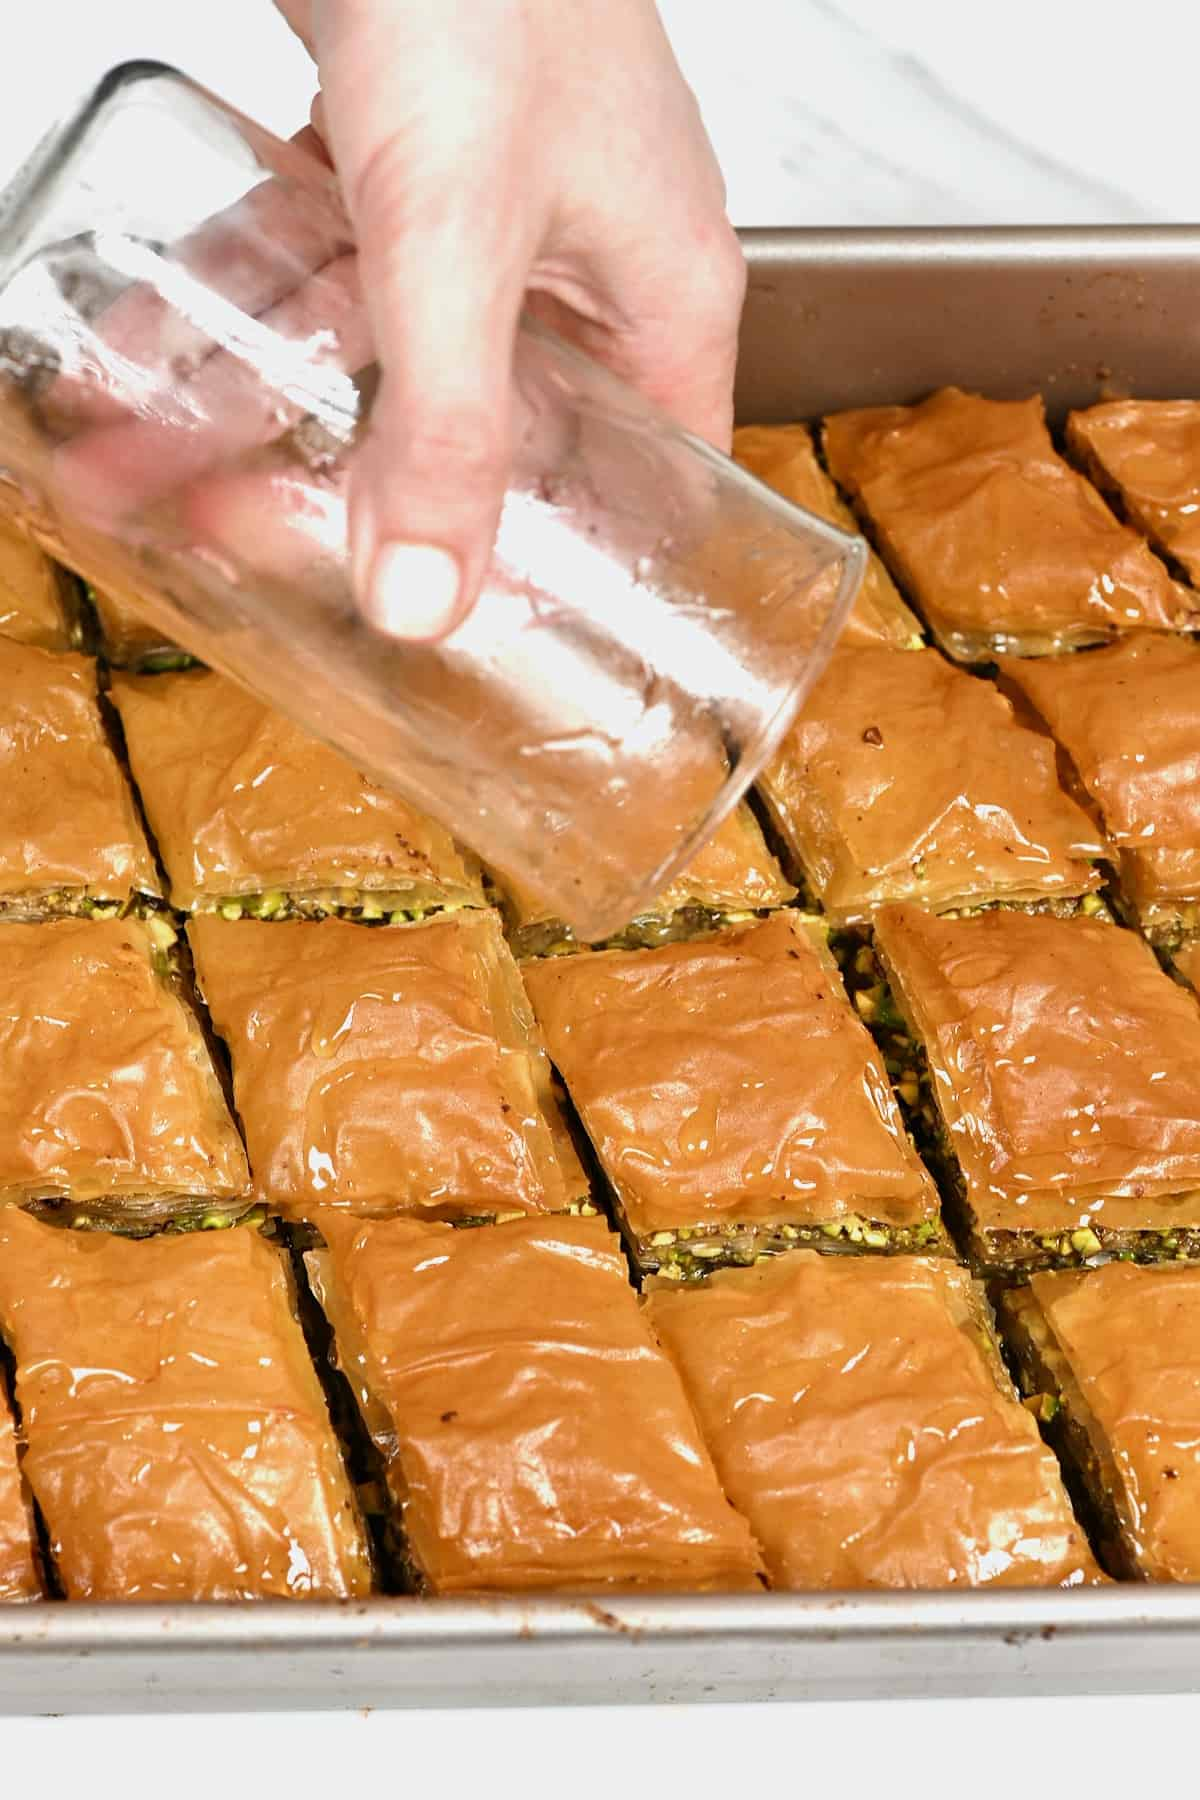 Pouring sugar syrup over freshly baked baklava